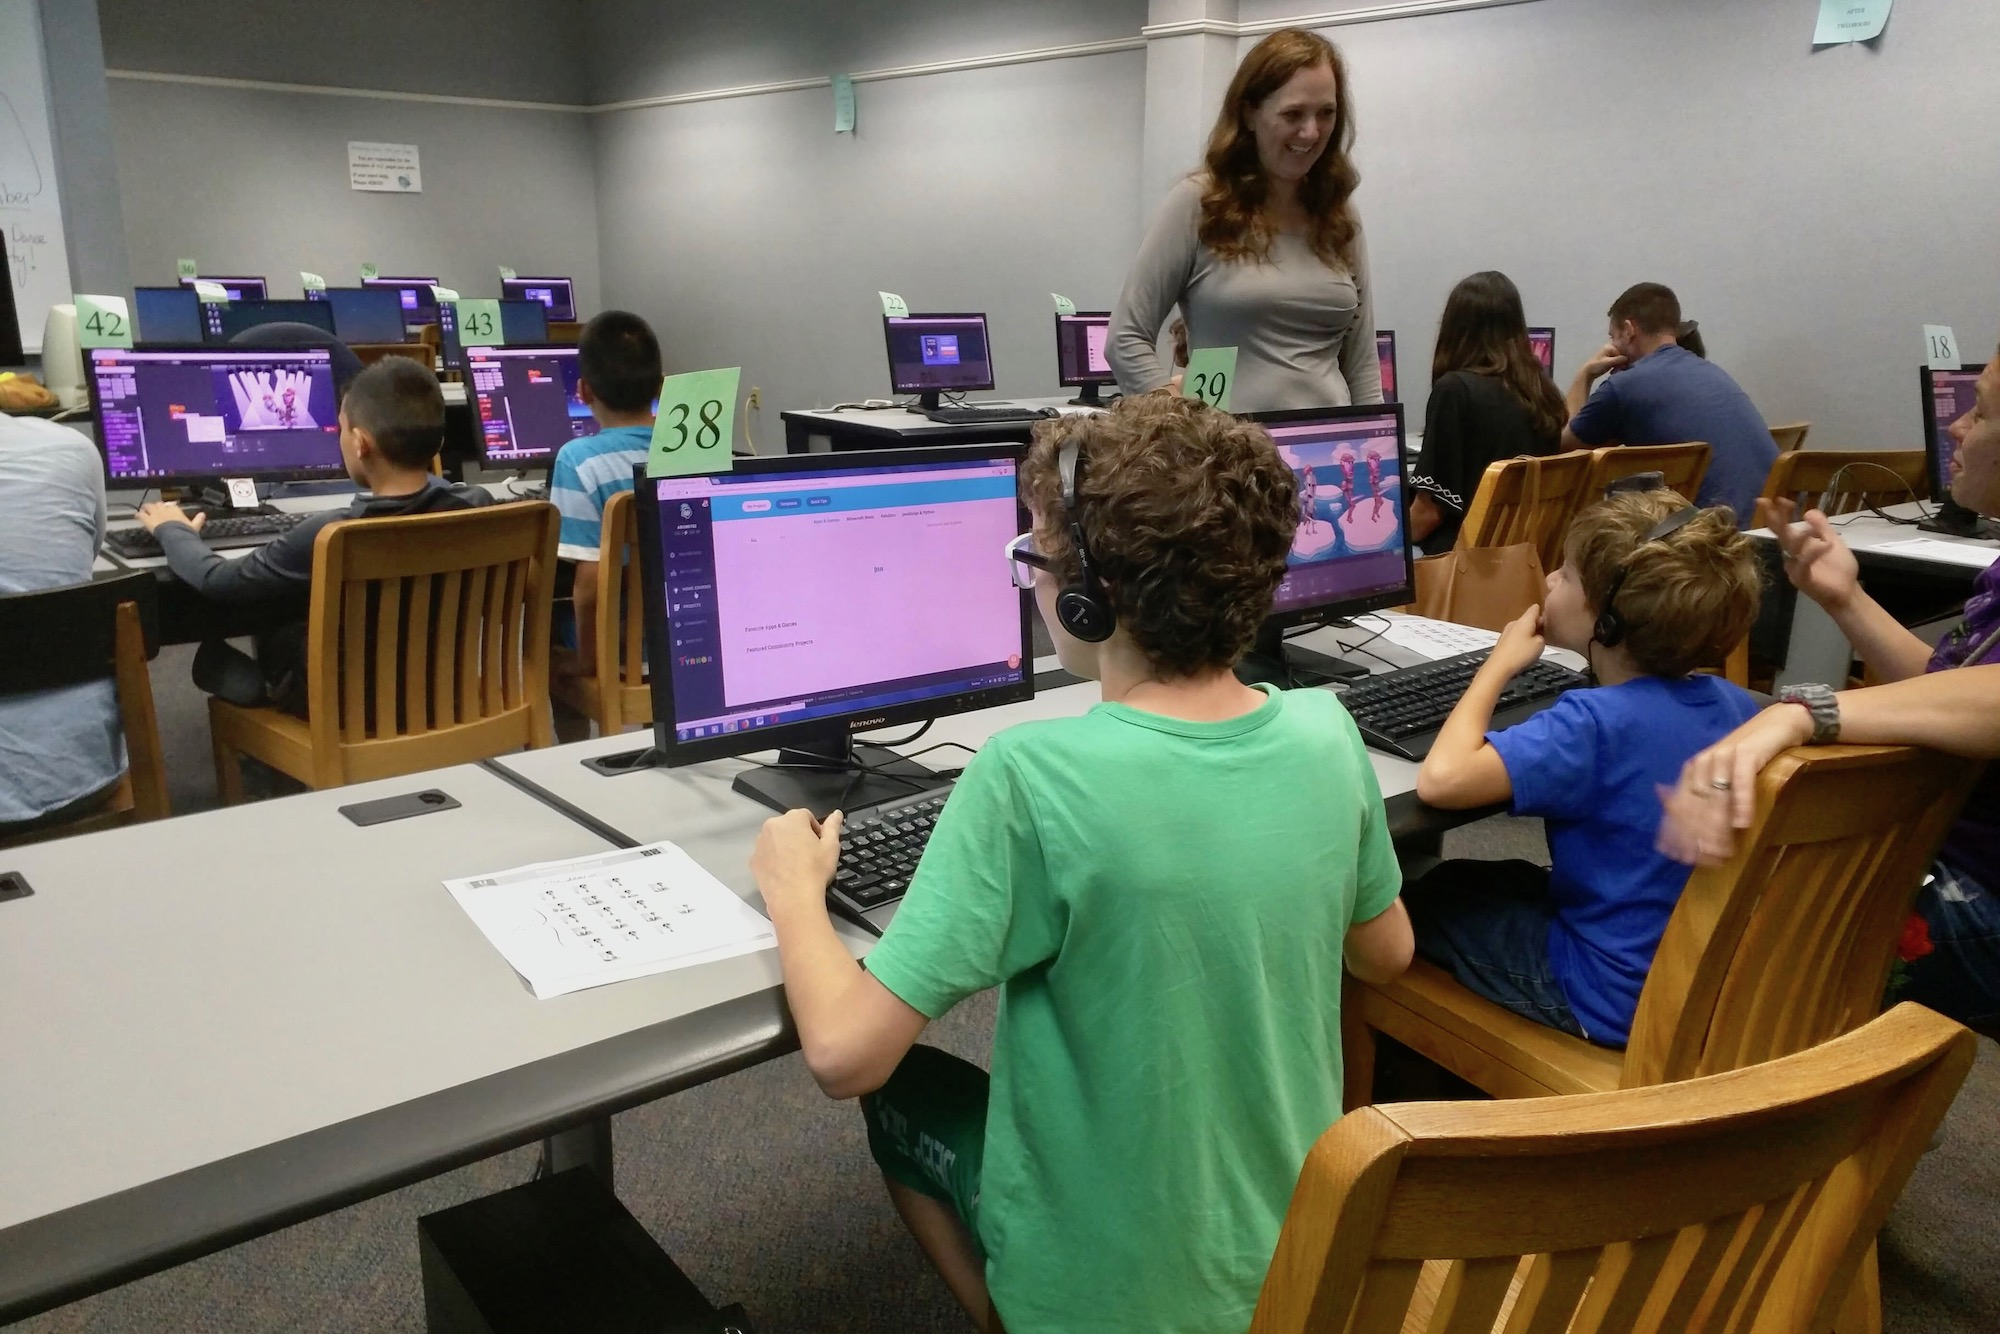 austin peay, local teacher team up to offer free coding classes for